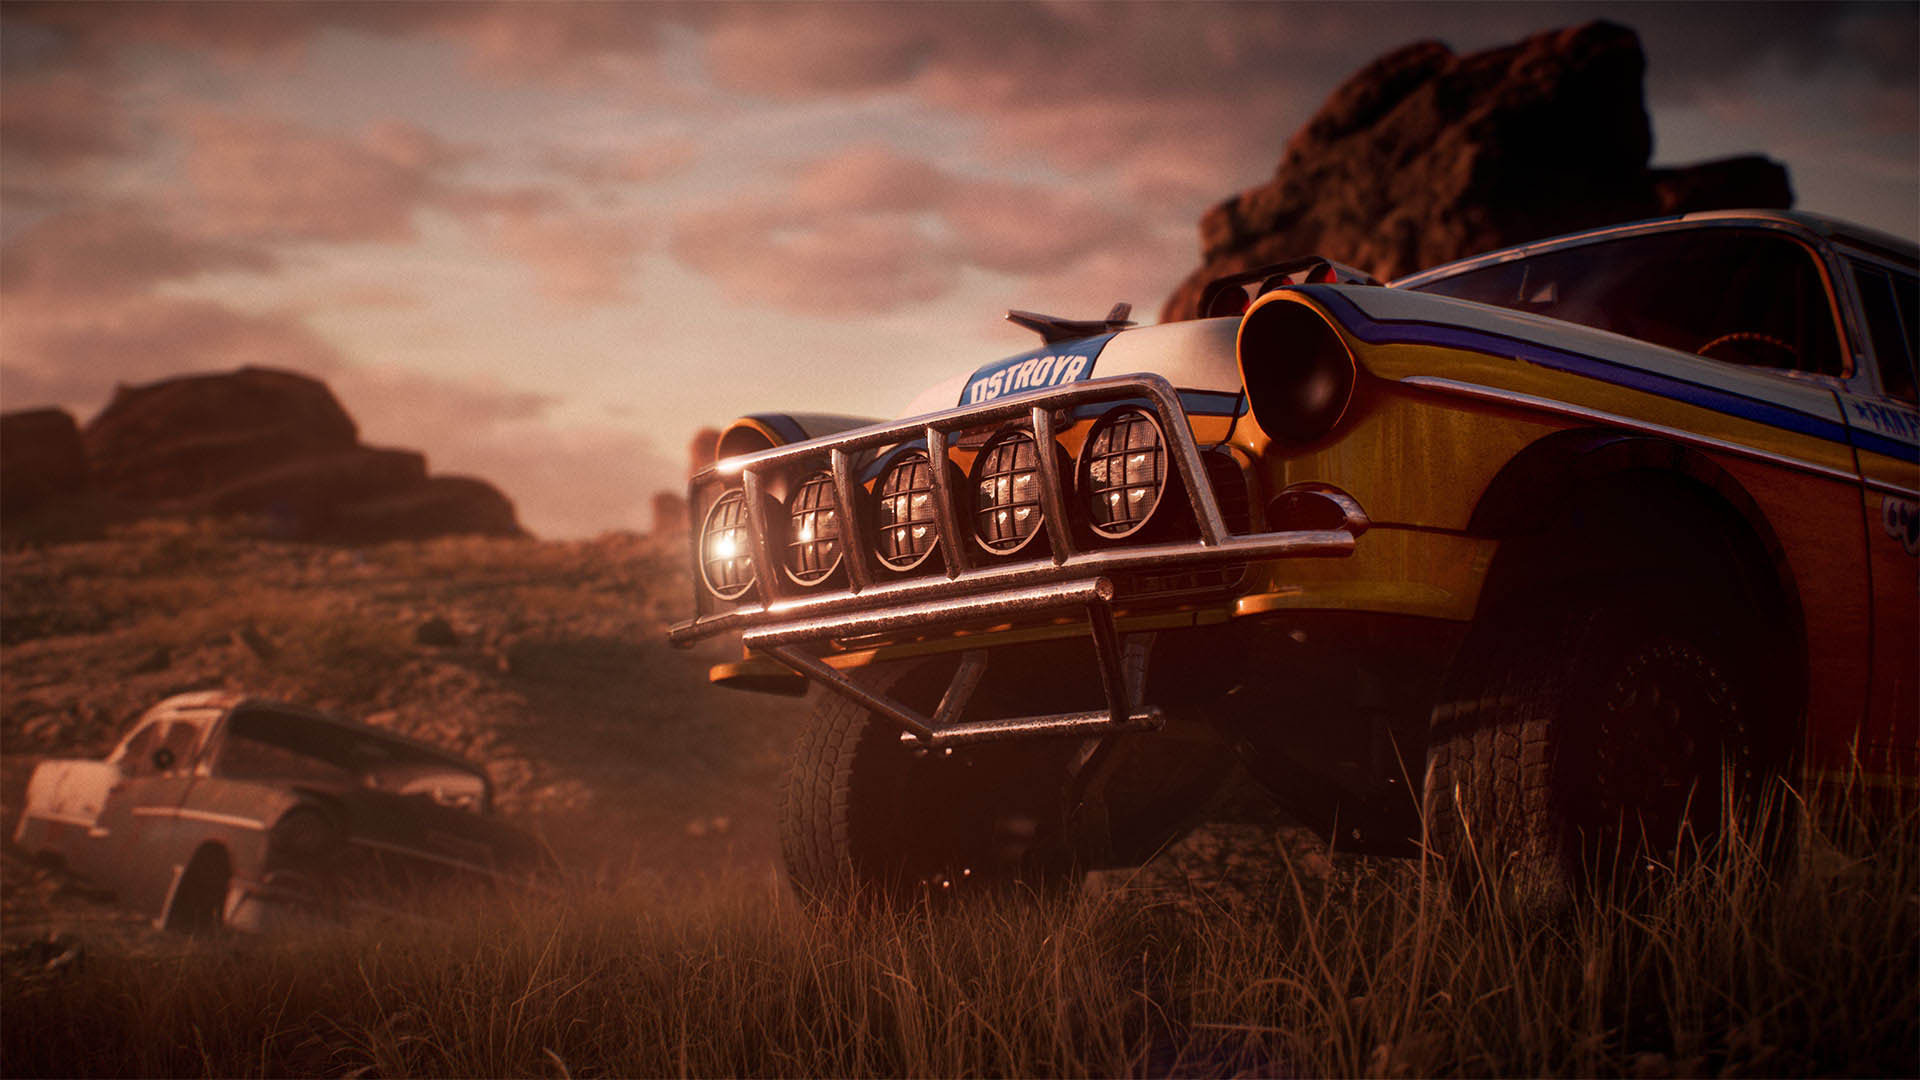 Need for Speed Payback's car customisation is insanely intricate